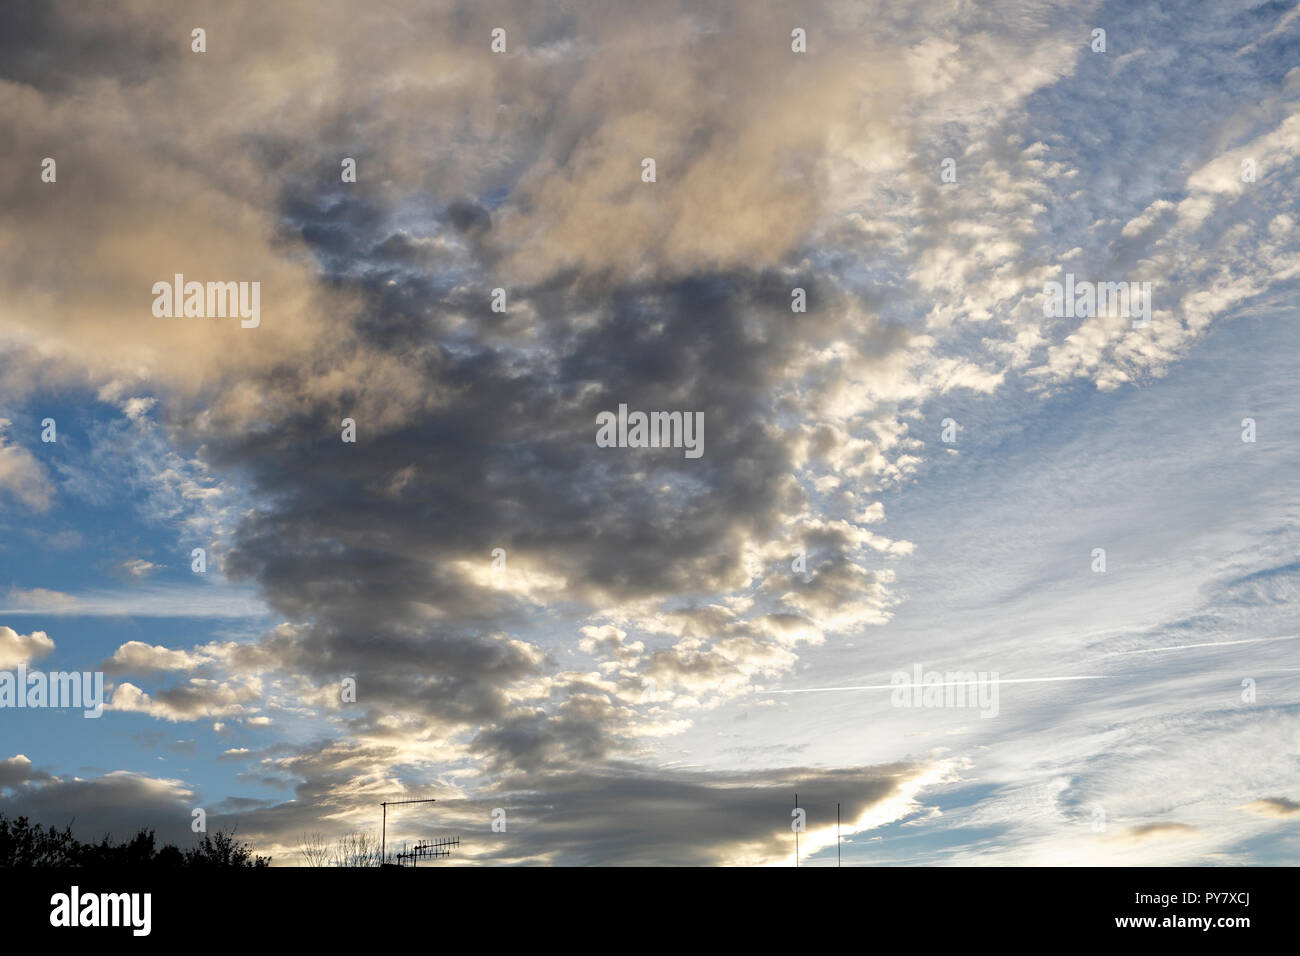 Evening Clouds Skyscape - Stock Image